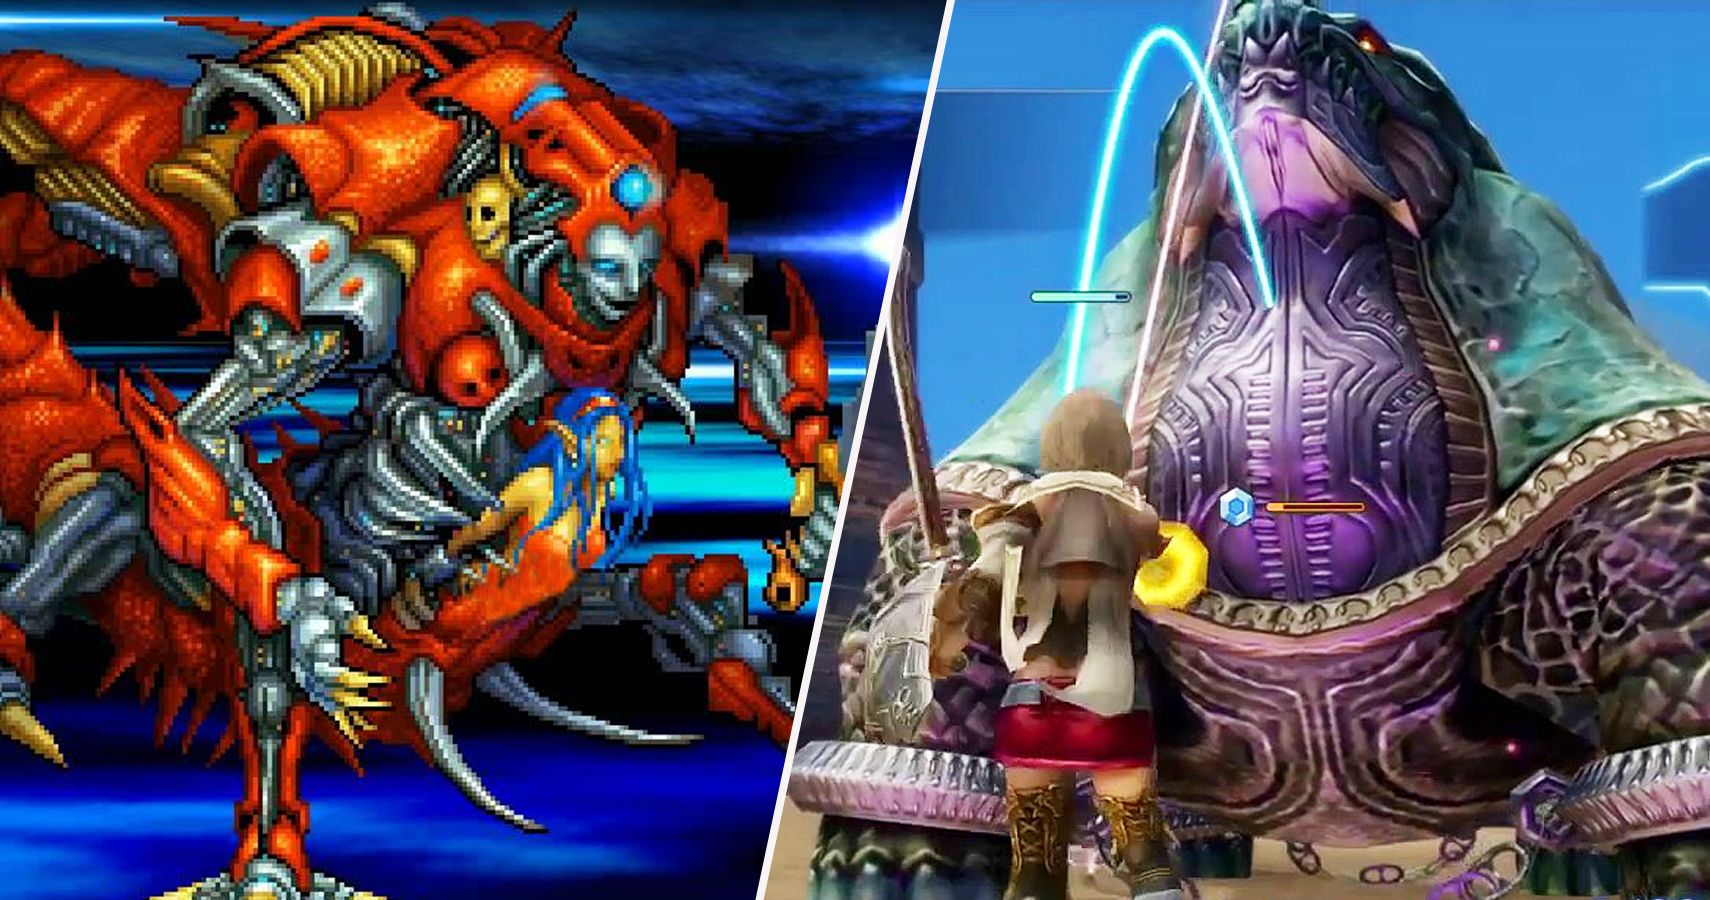 20 Hidden Final Fantasy Bosses And Where To Find Them